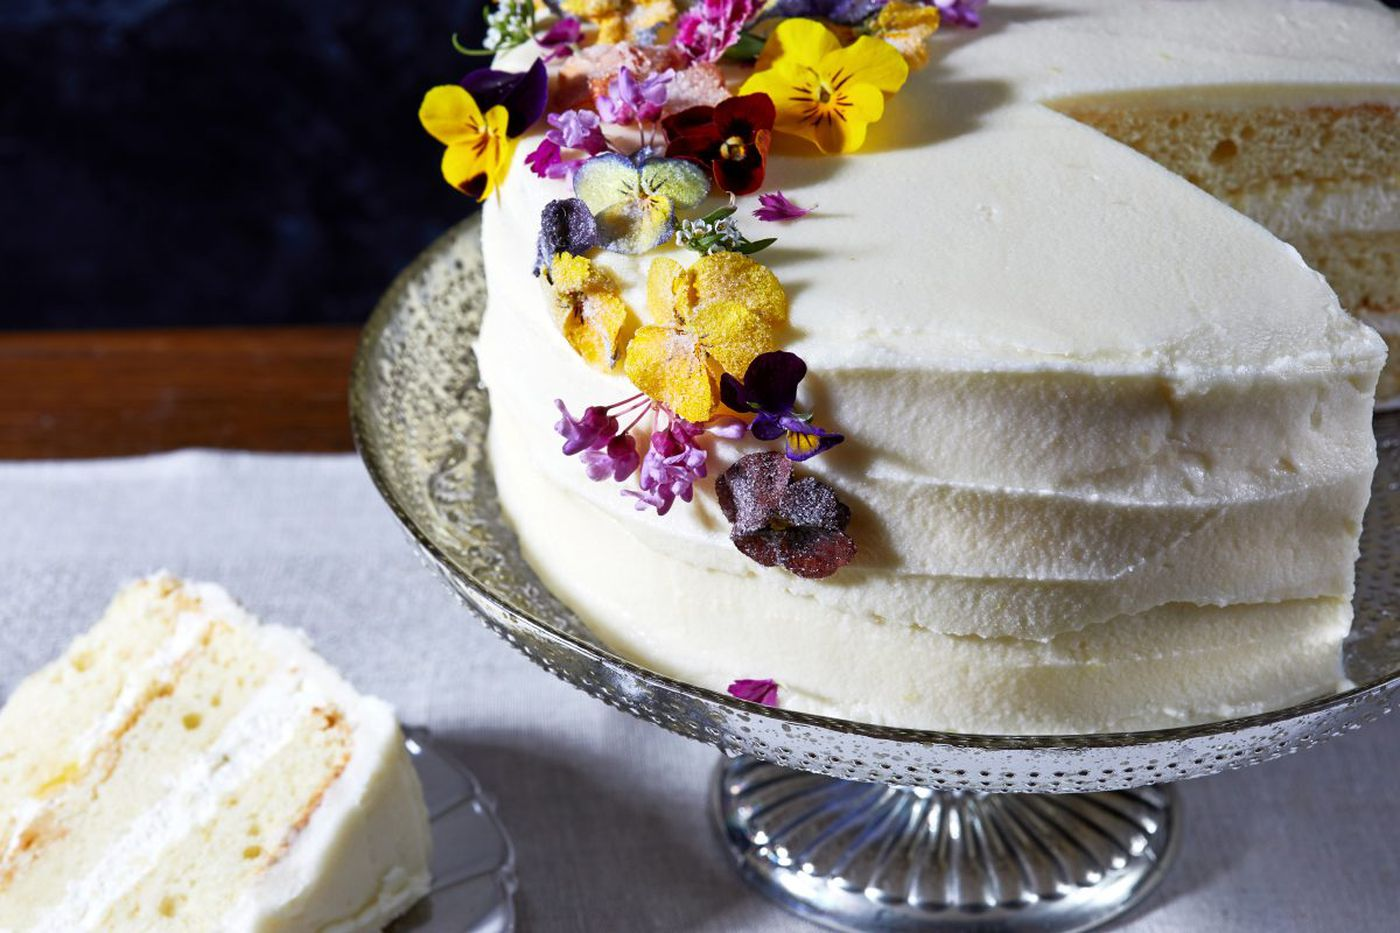 How to make your own version of Prince Harry and Meghan Markle's royal wedding cake